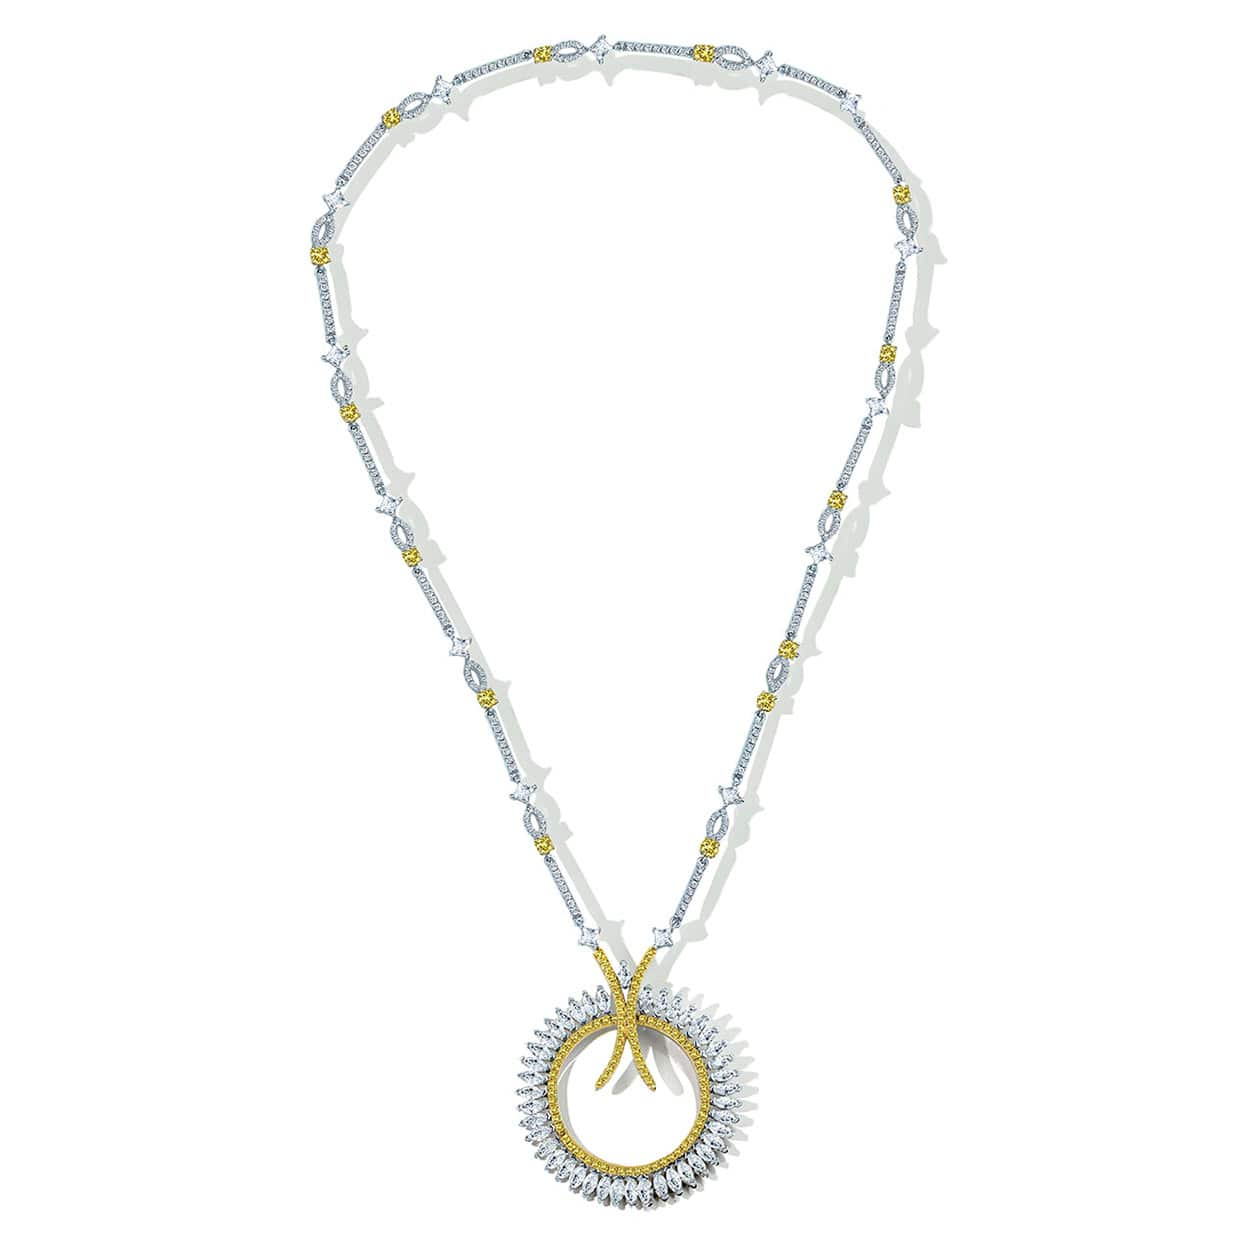 Sahara Iconic Medallion Necklace - Abelstedt